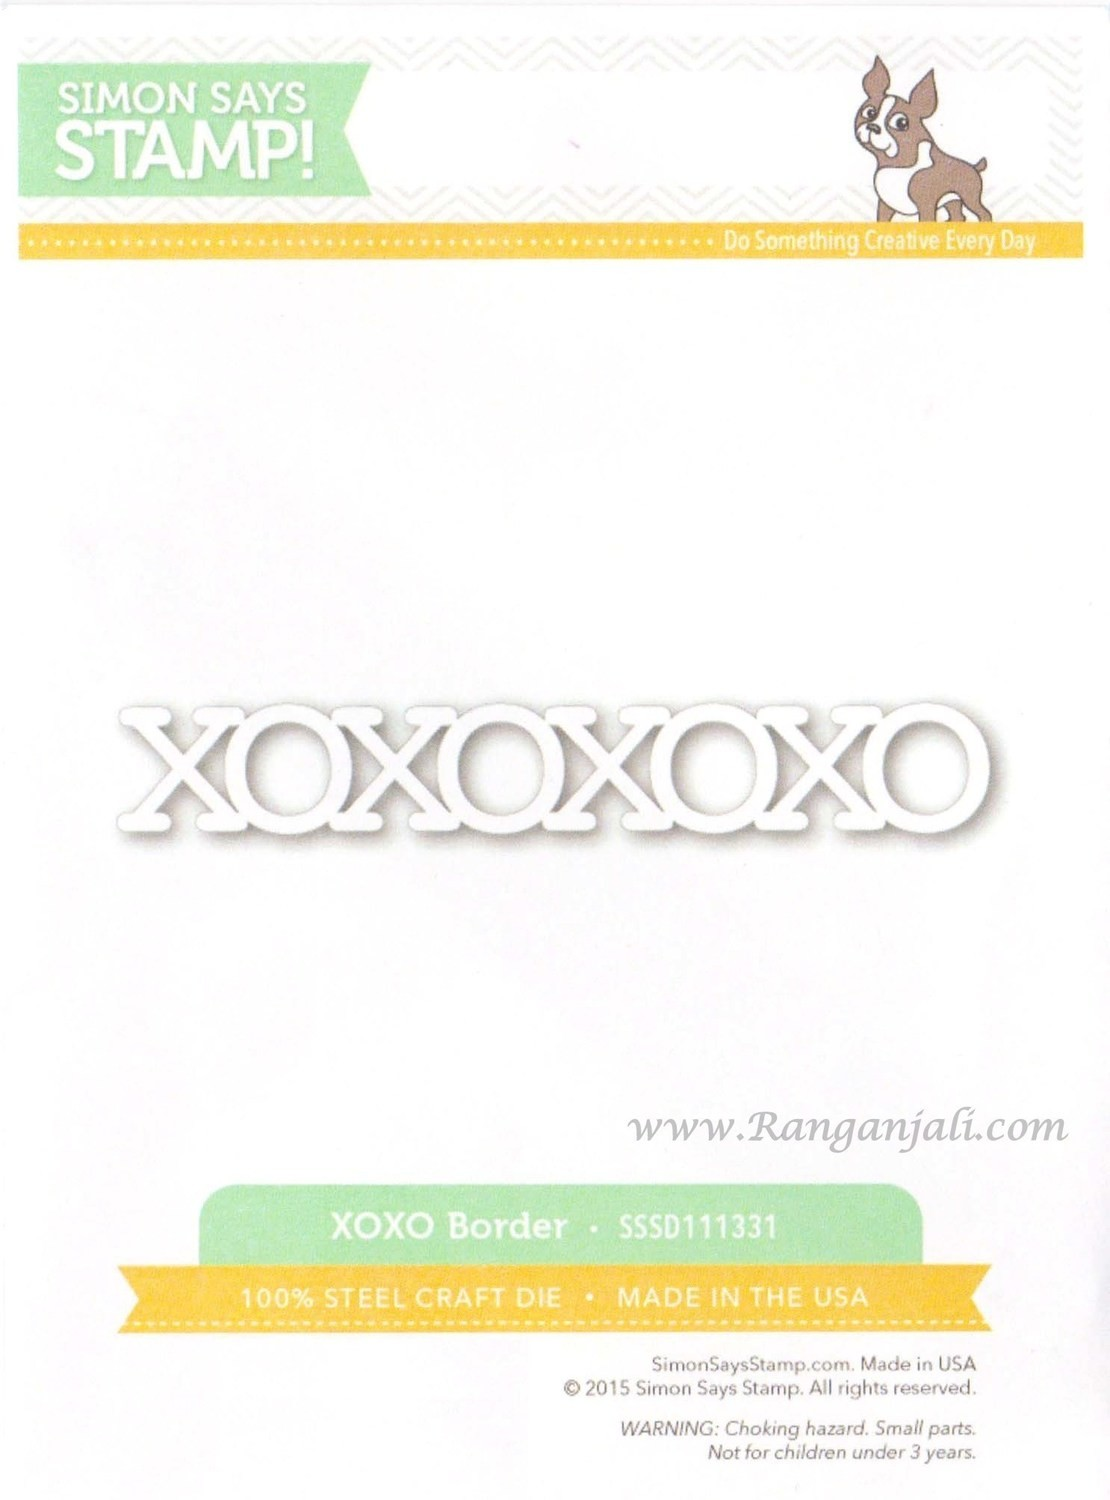 Simon Says Stamp XOXO BORDER Craft Die